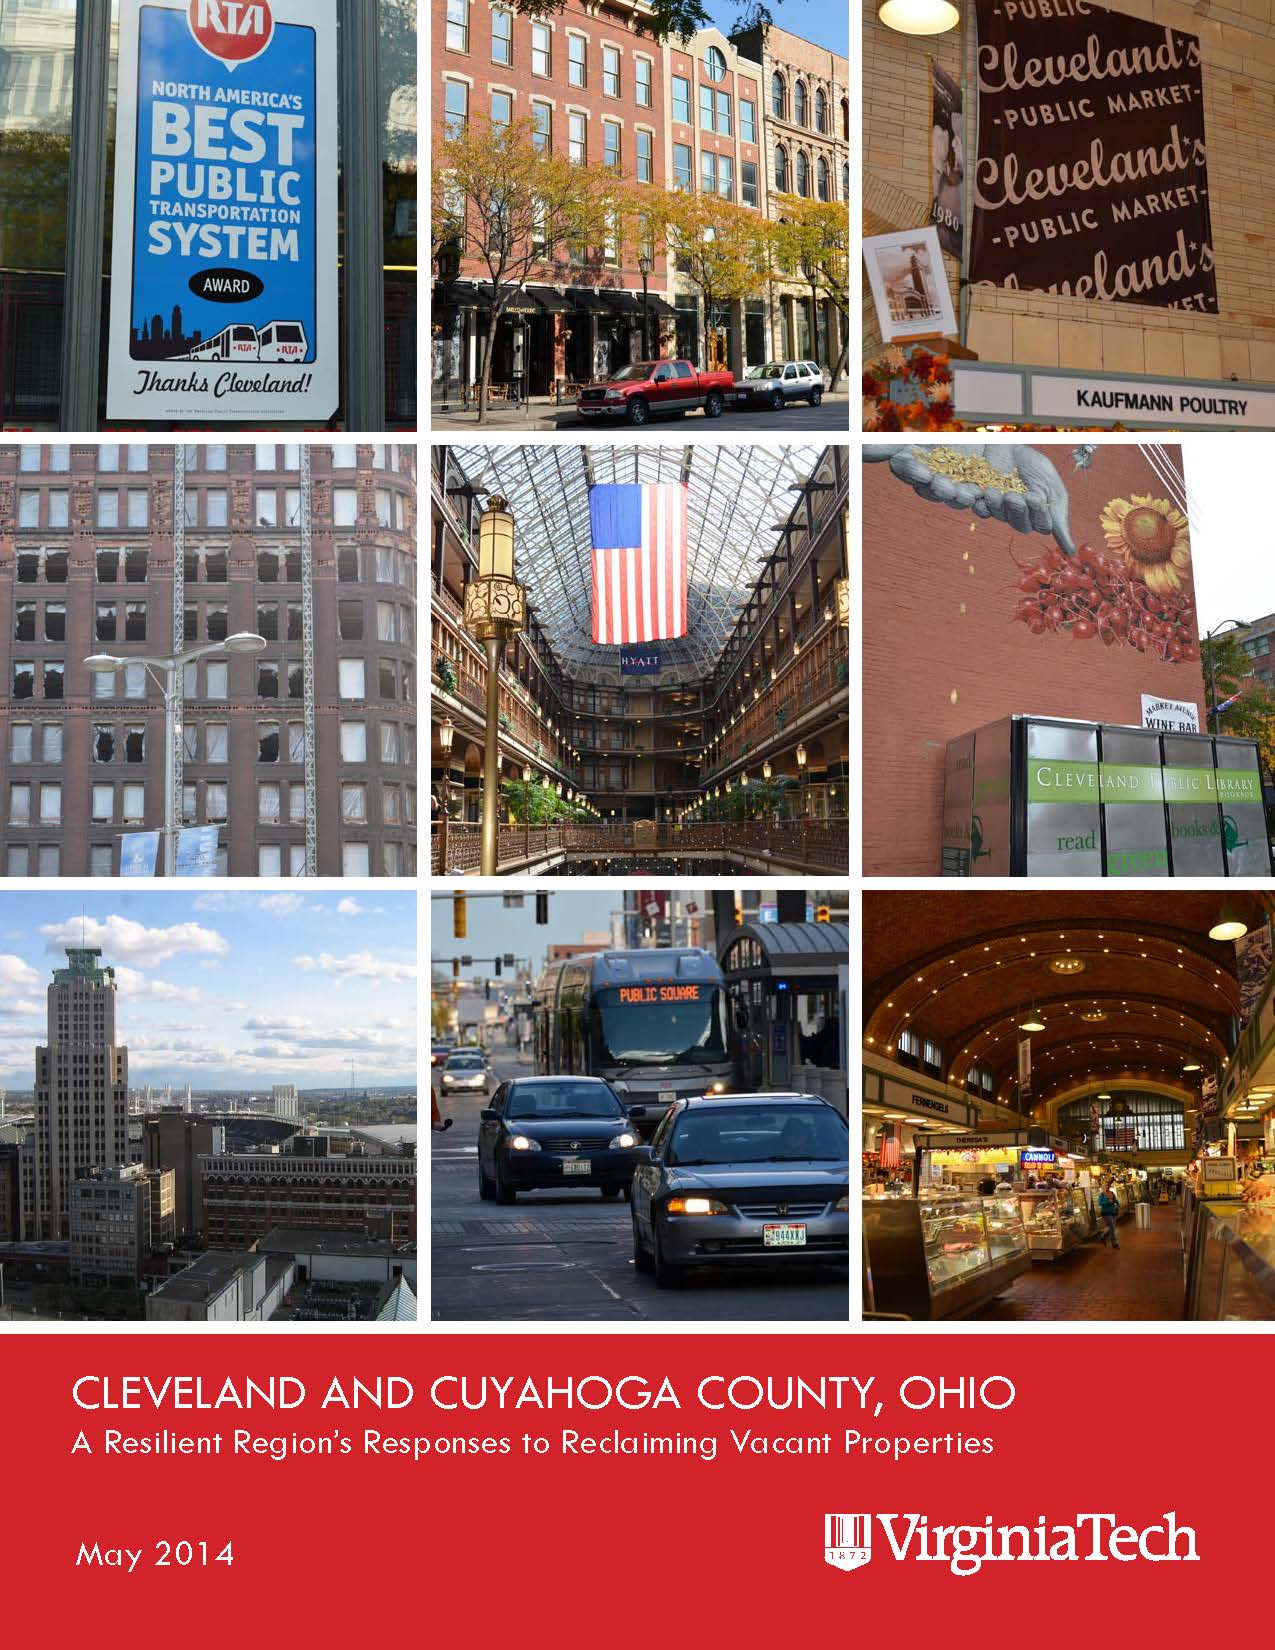 Cleveland and Cuyahoga County, Ohio: A Resilient Region's Responses to Reclaiming Vacant Properties